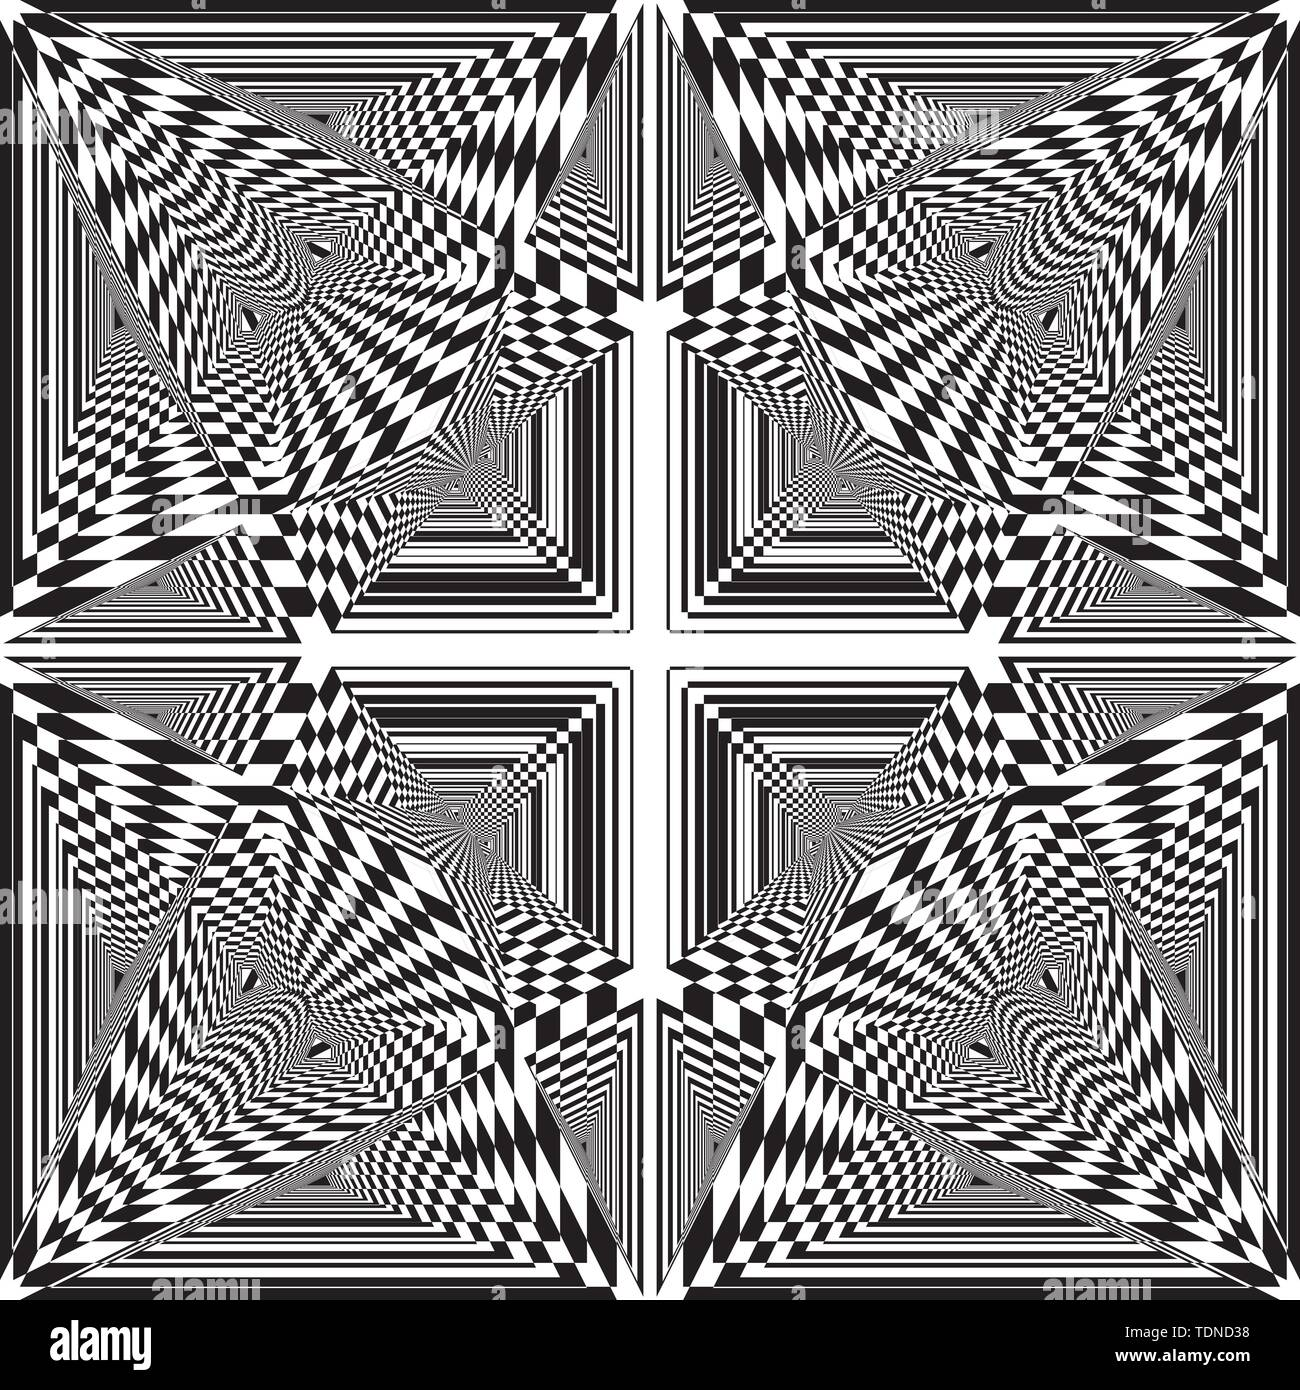 moultiple triangle intersections inspired strukture abstract cut art deco illustration on transparent background - Stock Image